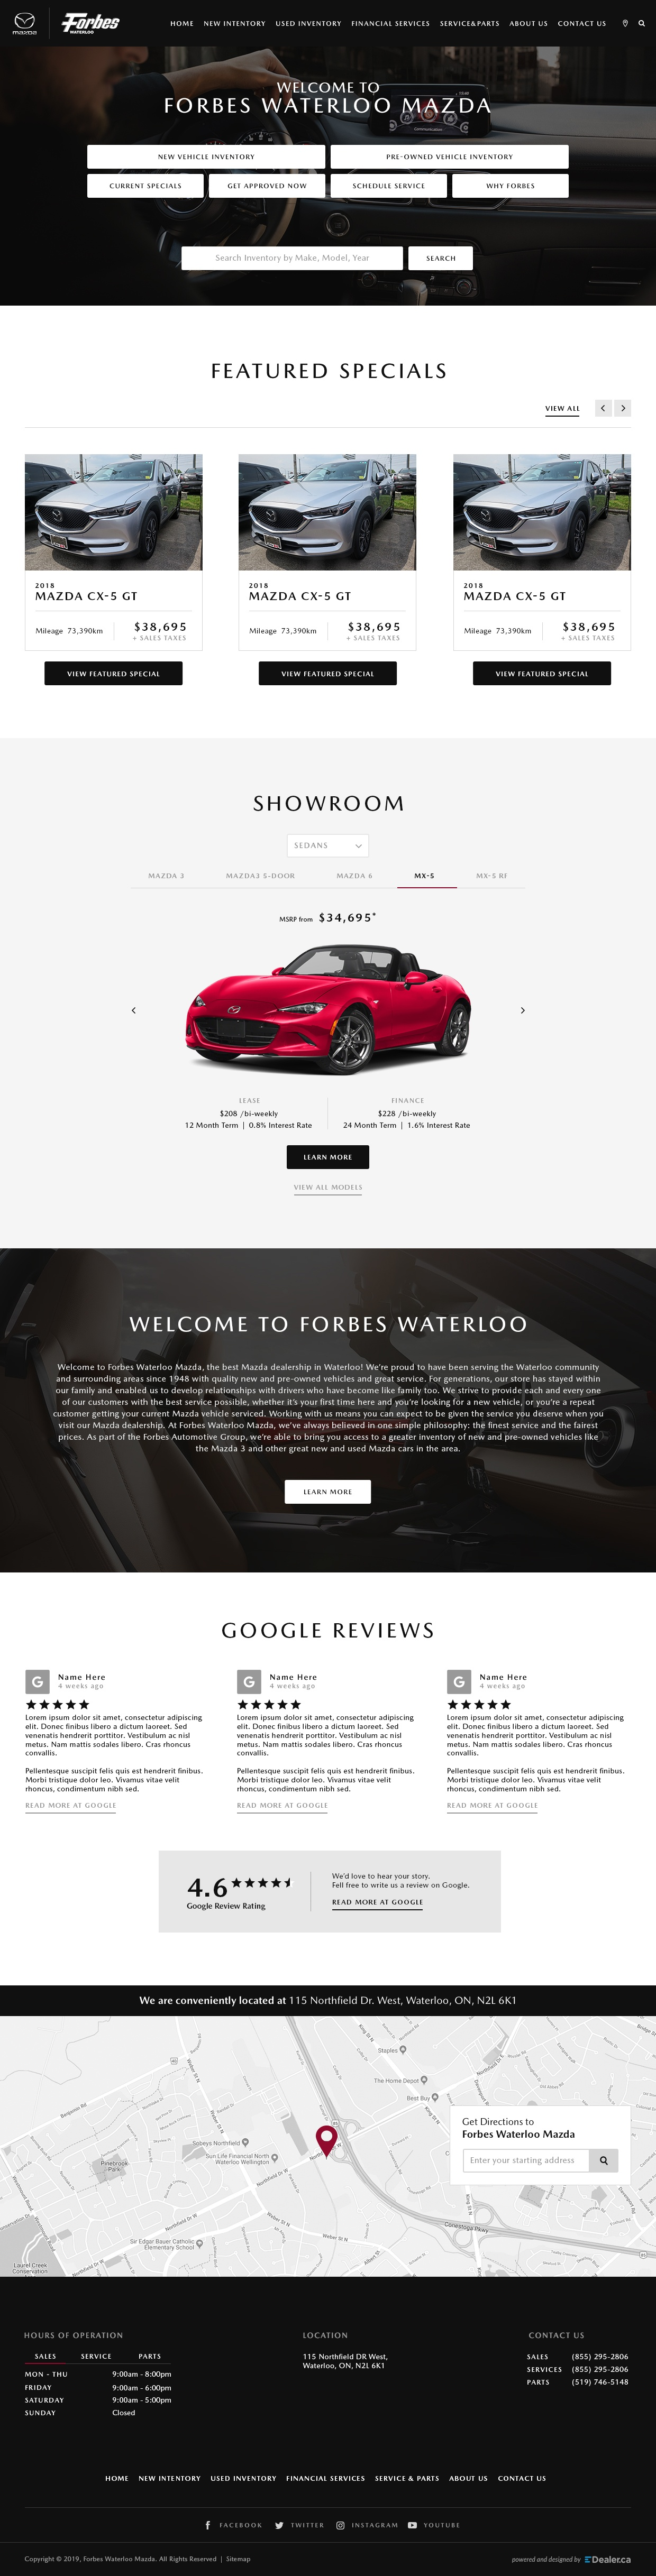 Forbes Waterloo Mazda